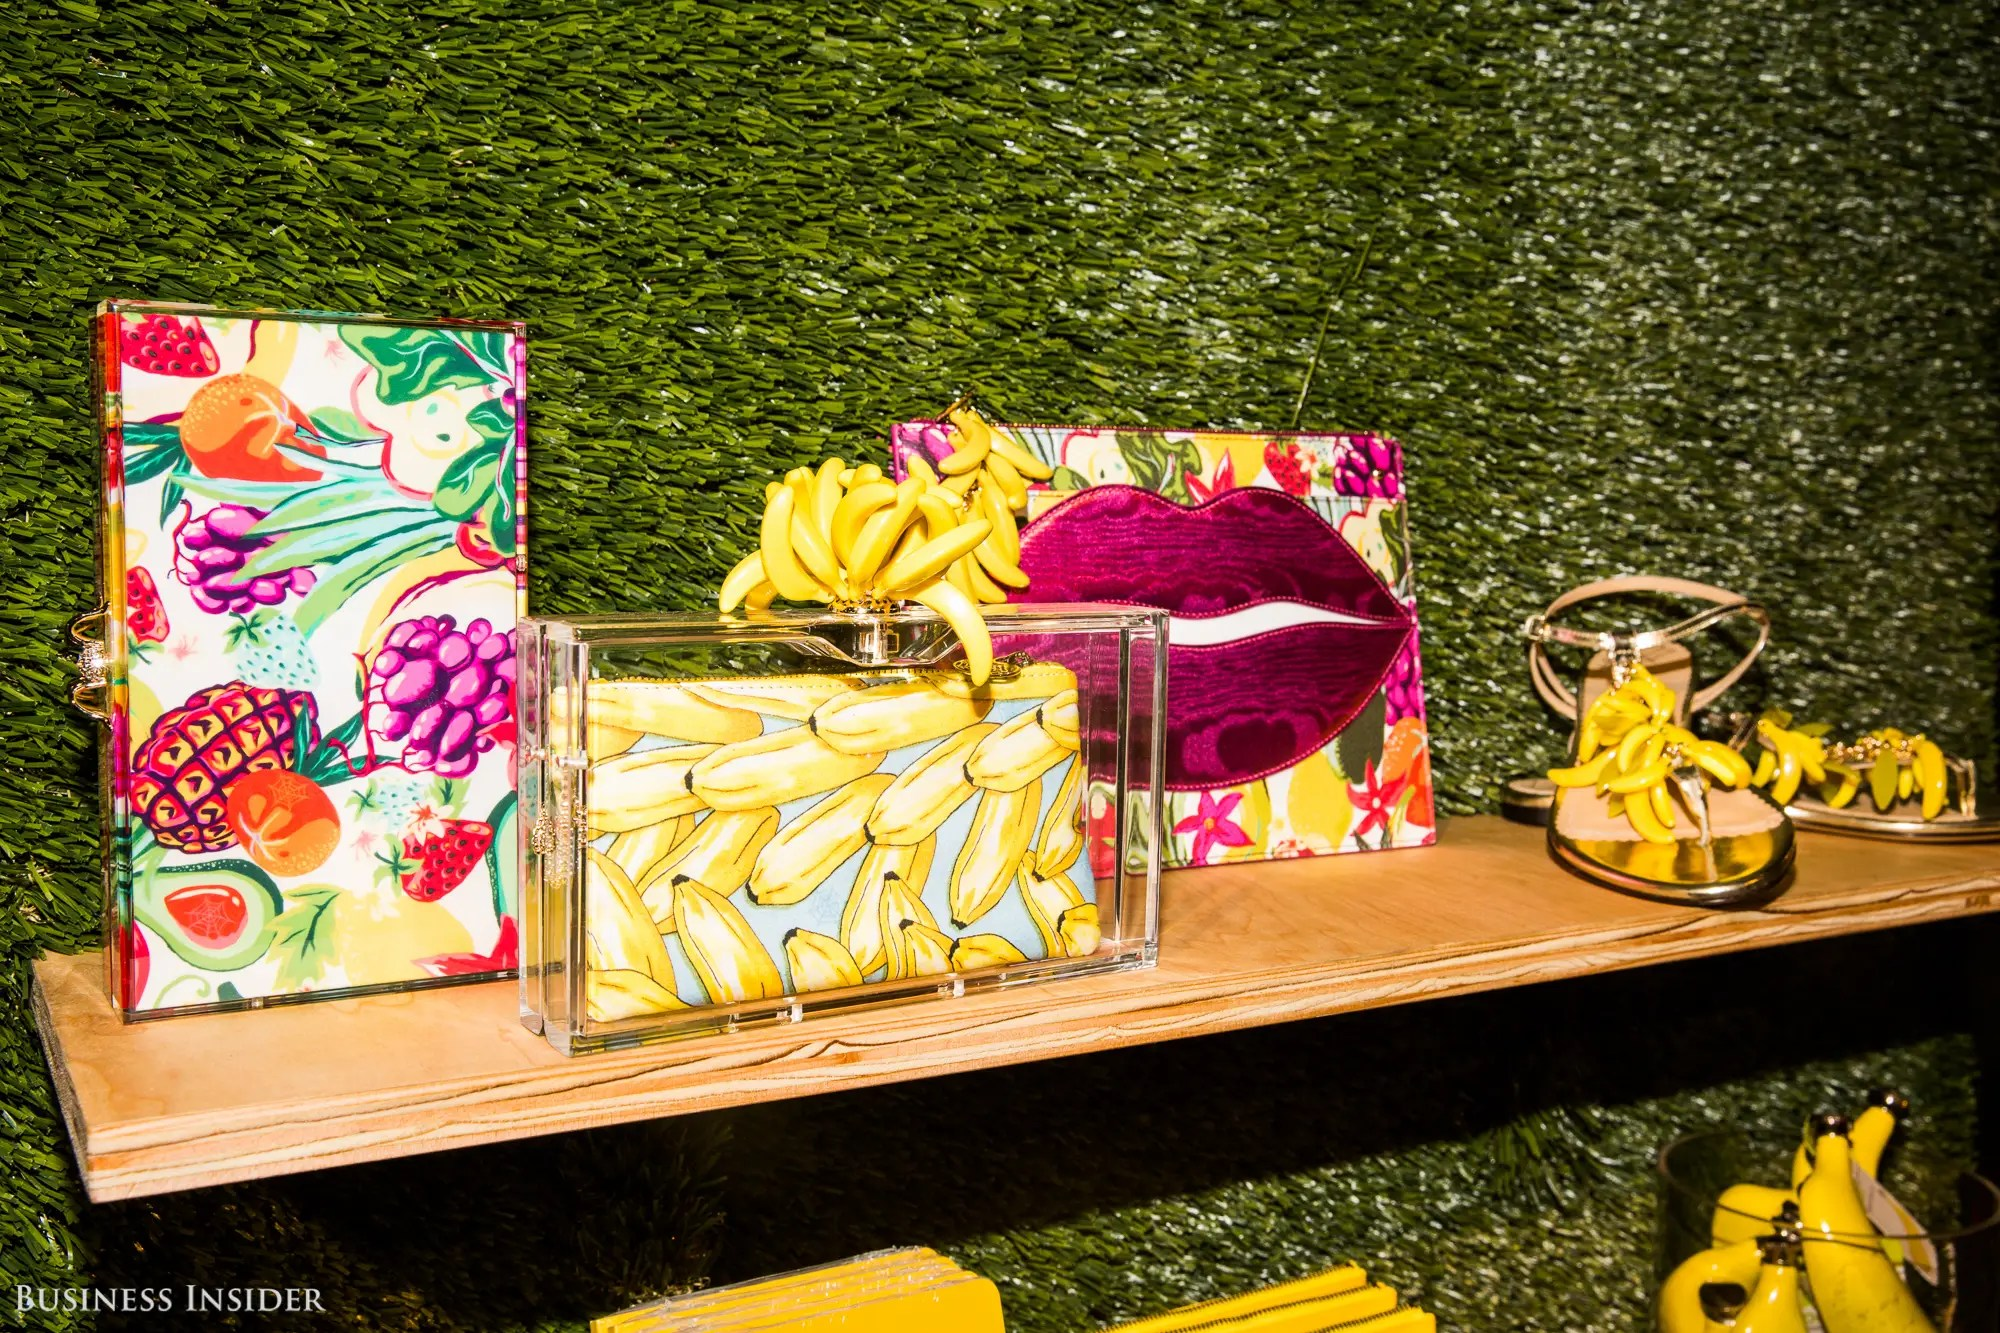 The banana-themed clutch and sandals pictured below cost $1,095 and $795 respectively. They're surrounded by other banana-themed items, like flasks and notebooks.